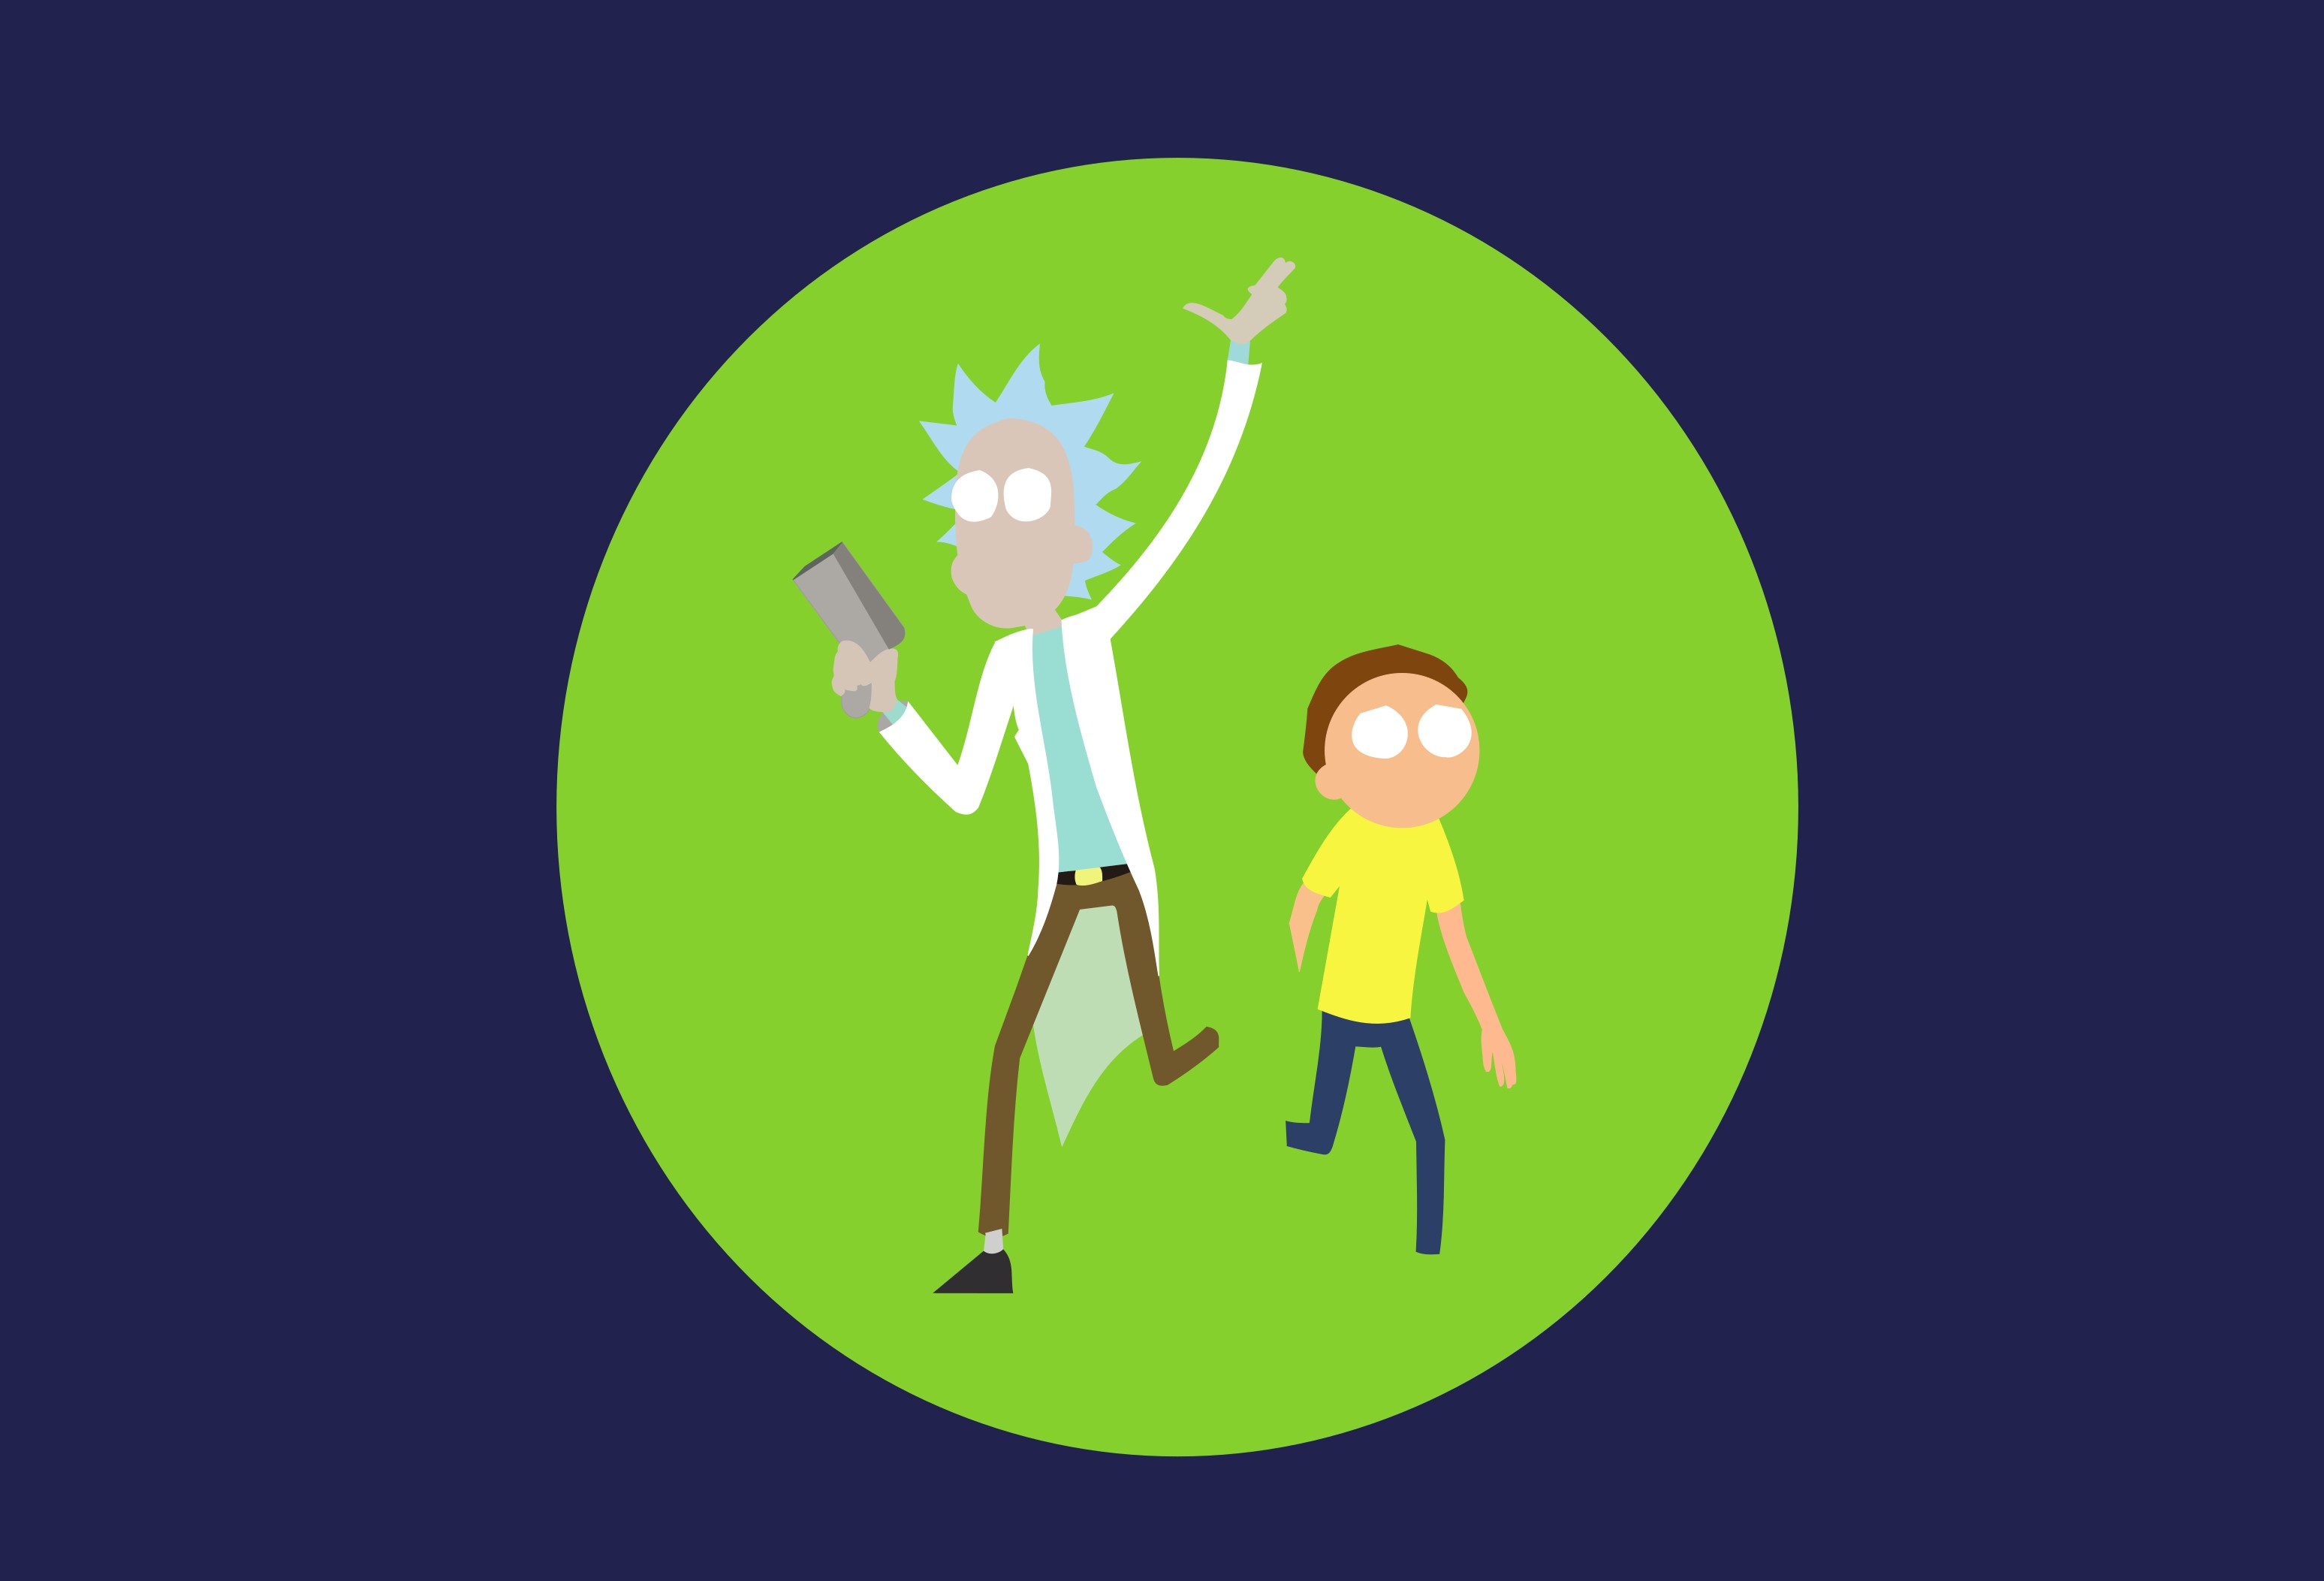 Most Popular Iphone X Wallpaper Rick And Morty Wallpaper 183 ① Download Free Hd Wallpapers Of